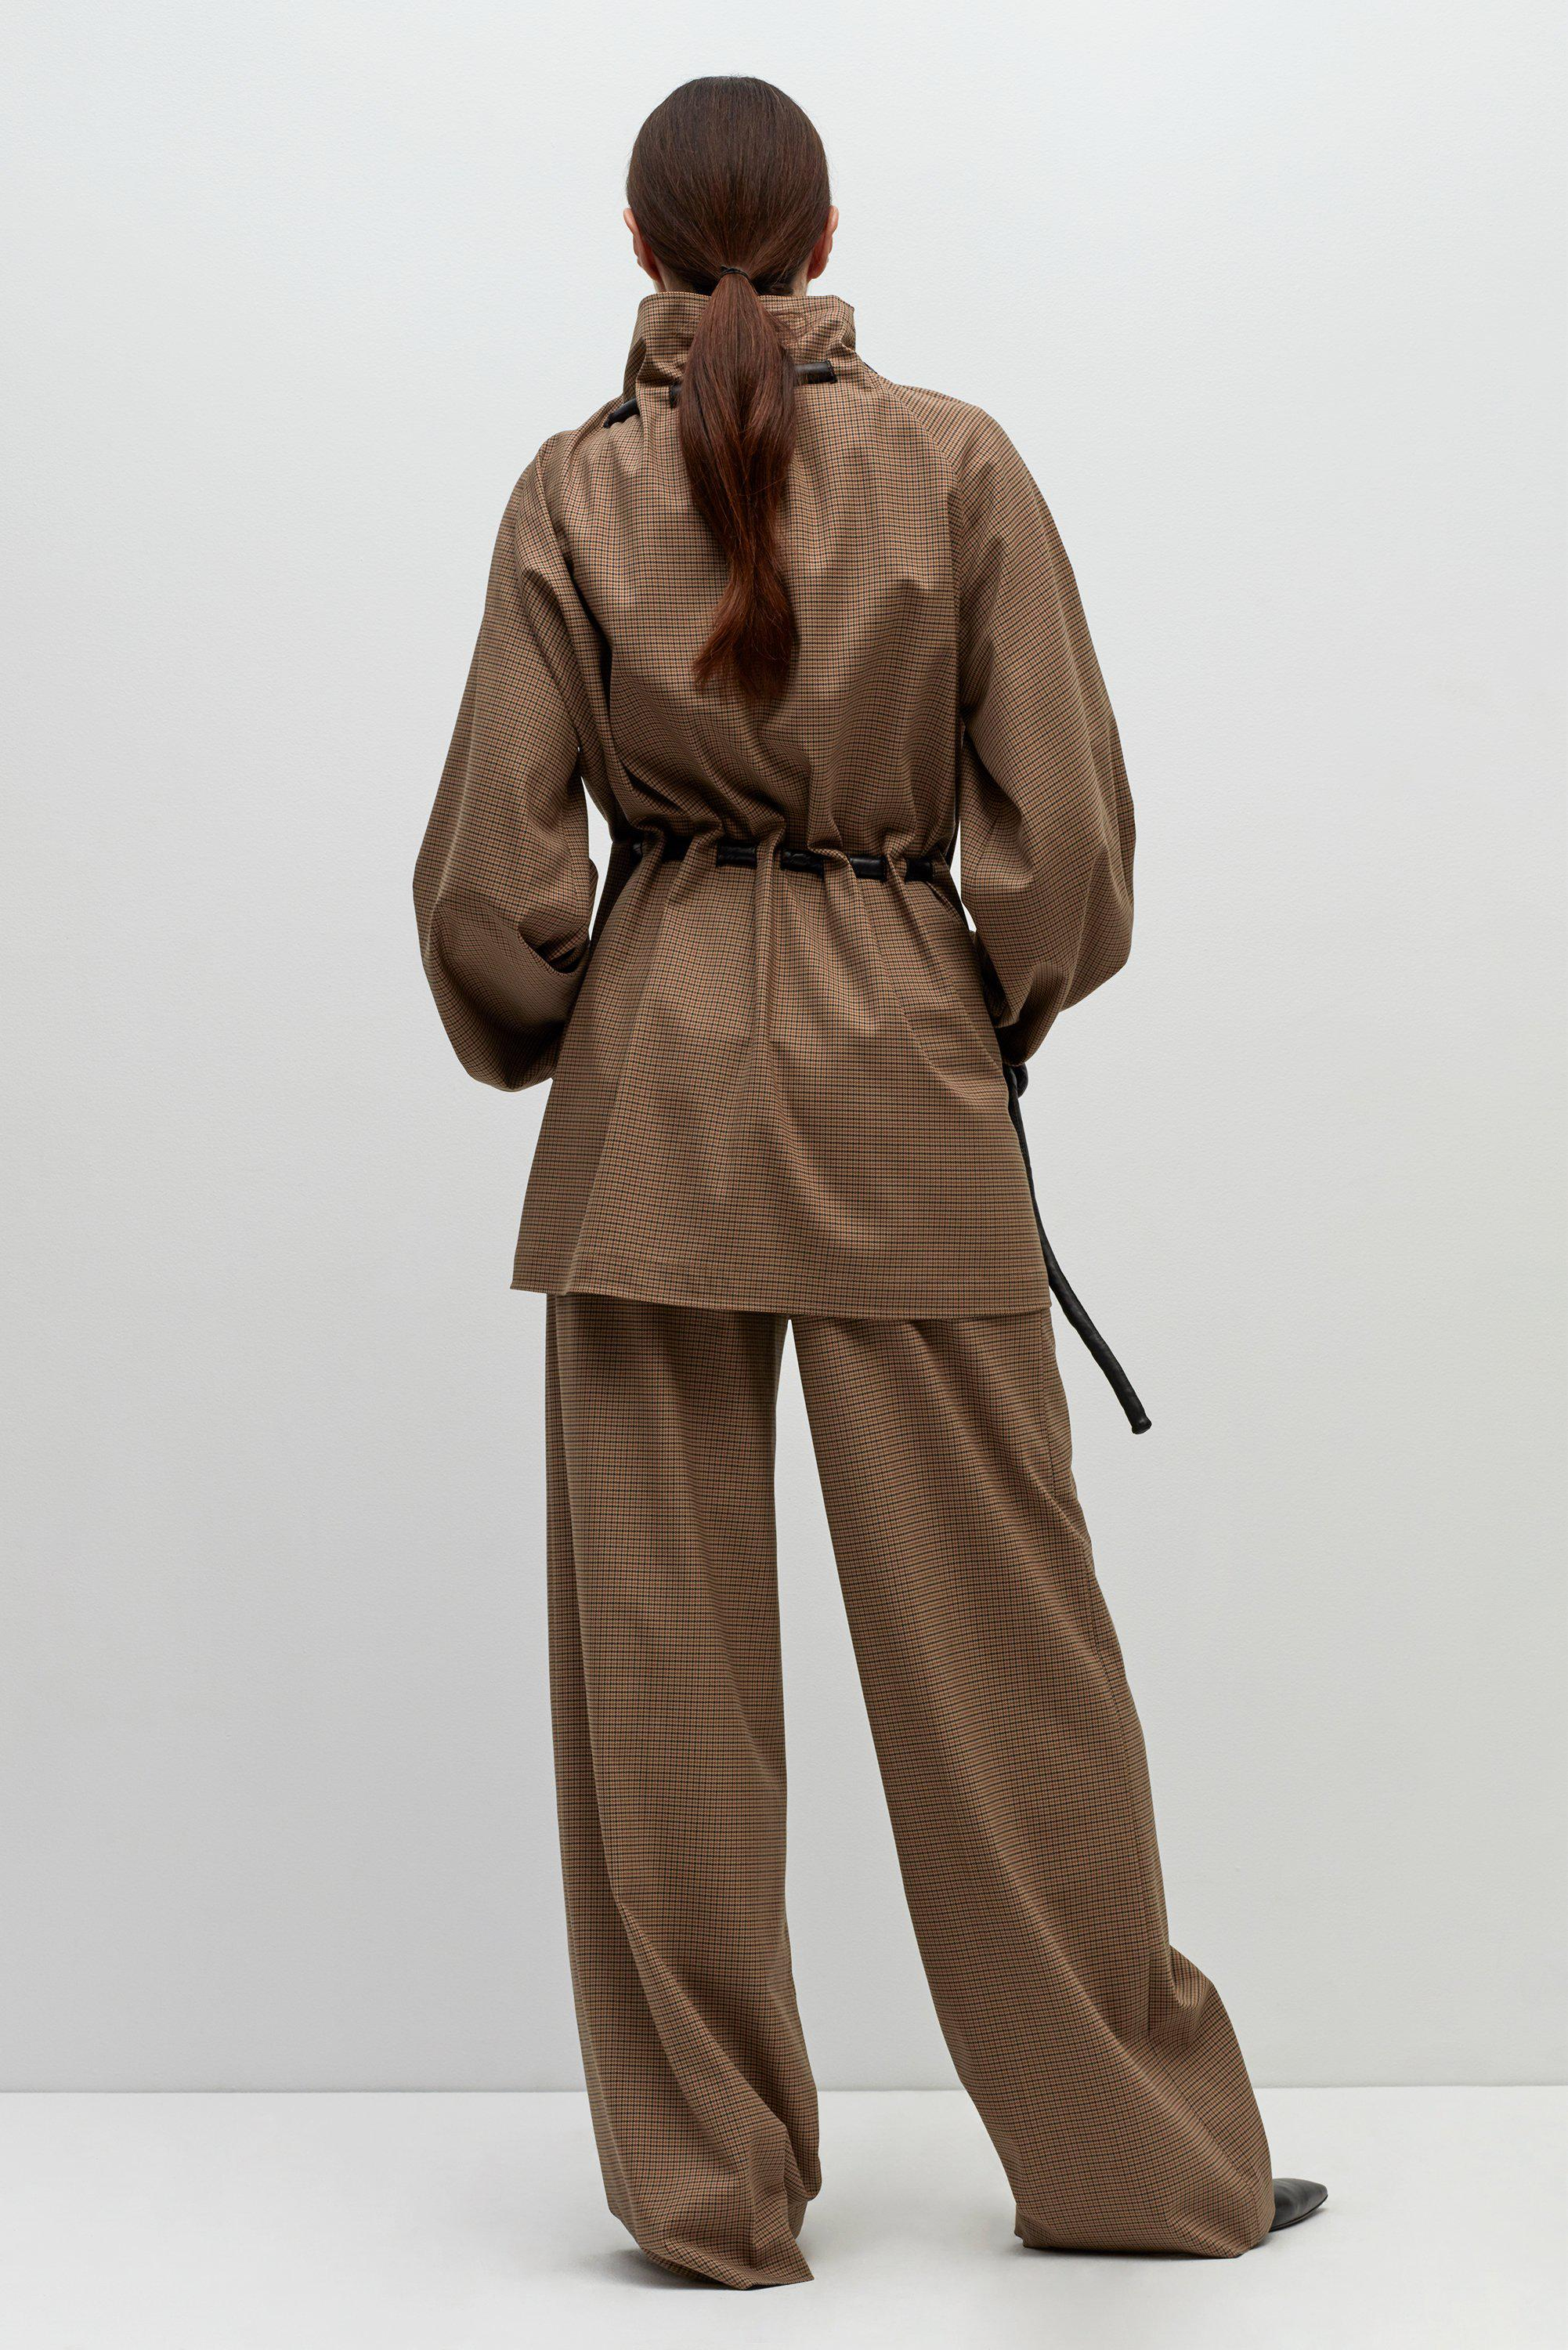 Jacket Getty Drawstring Lyst Brown Corded In Rosetta zIqWfHTF 9554bbe79bc